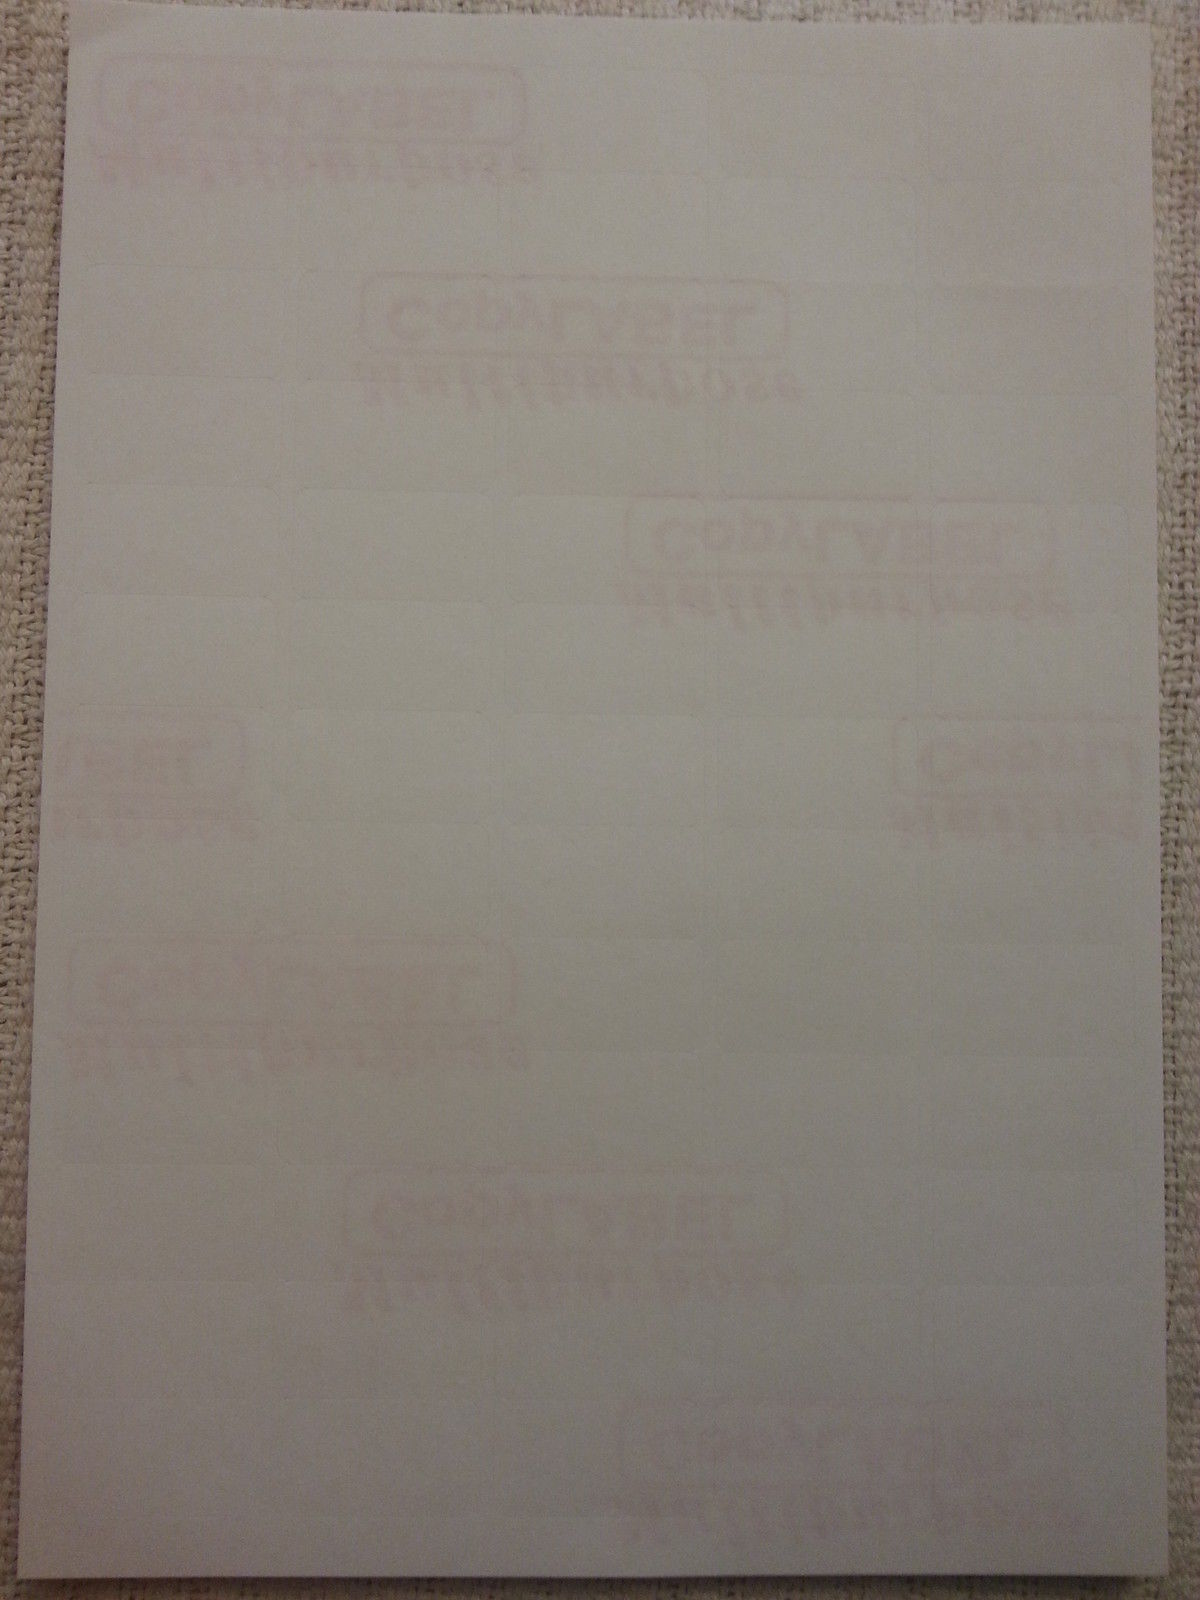 260 self adhesive sticky address labels